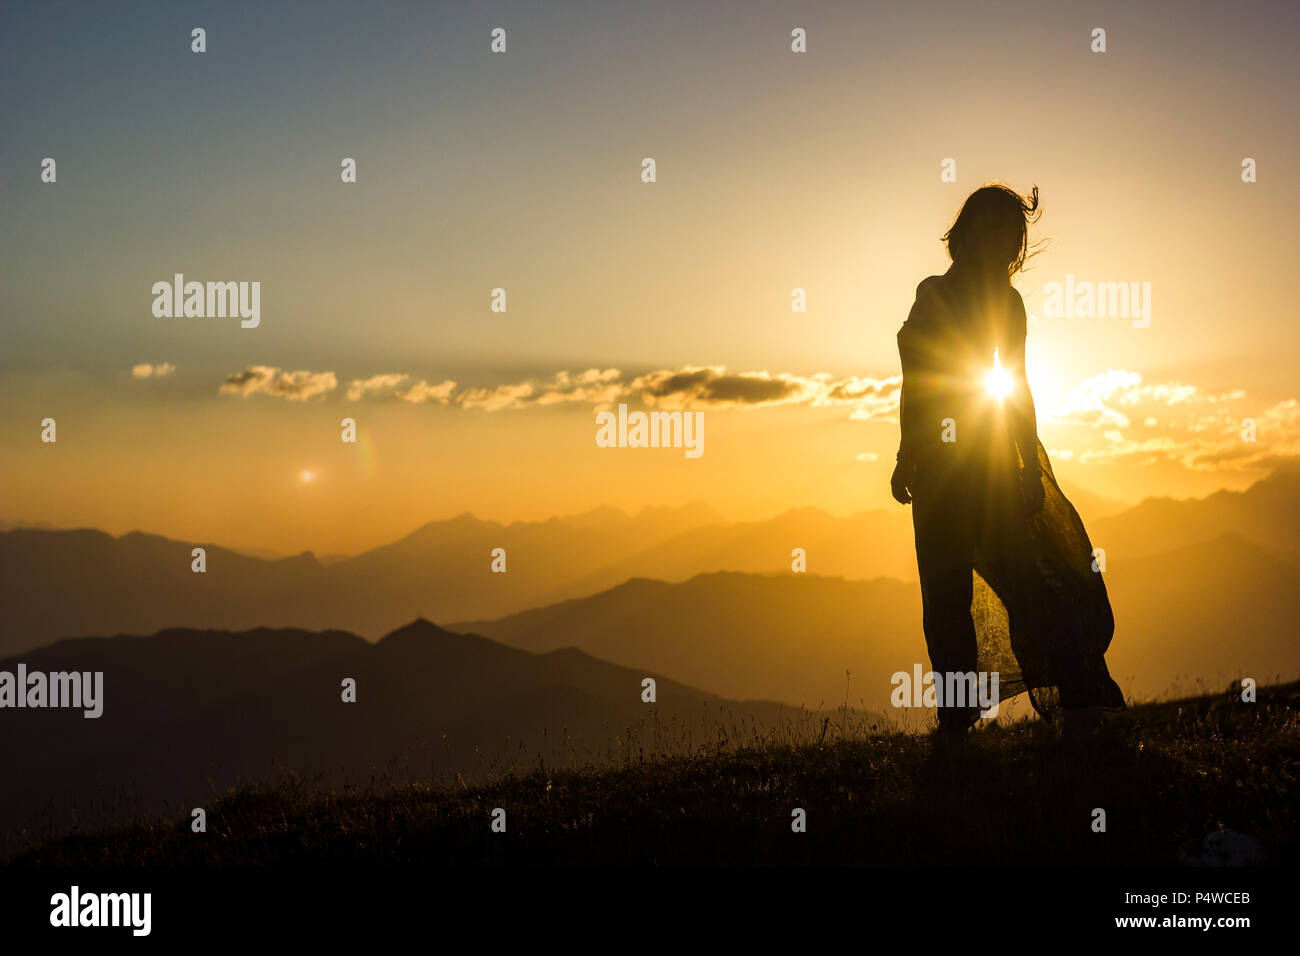 silhouete of girl in dress standing on grass in sunset mountains - Stock Image